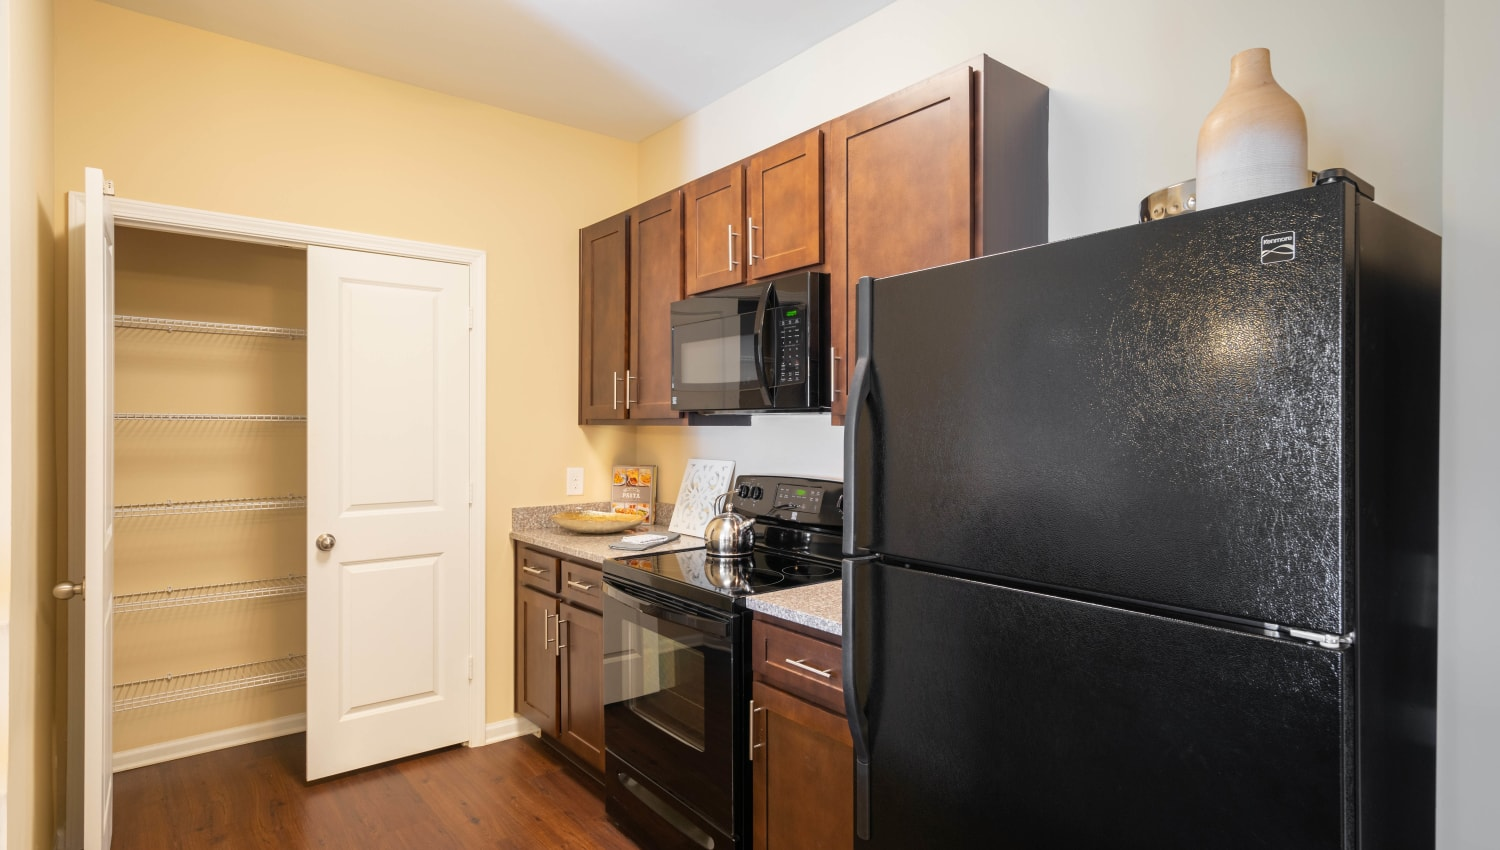 Model home's kitchen pantry for extra storage at Legends at White Oak in Ooltewah, Tennessee